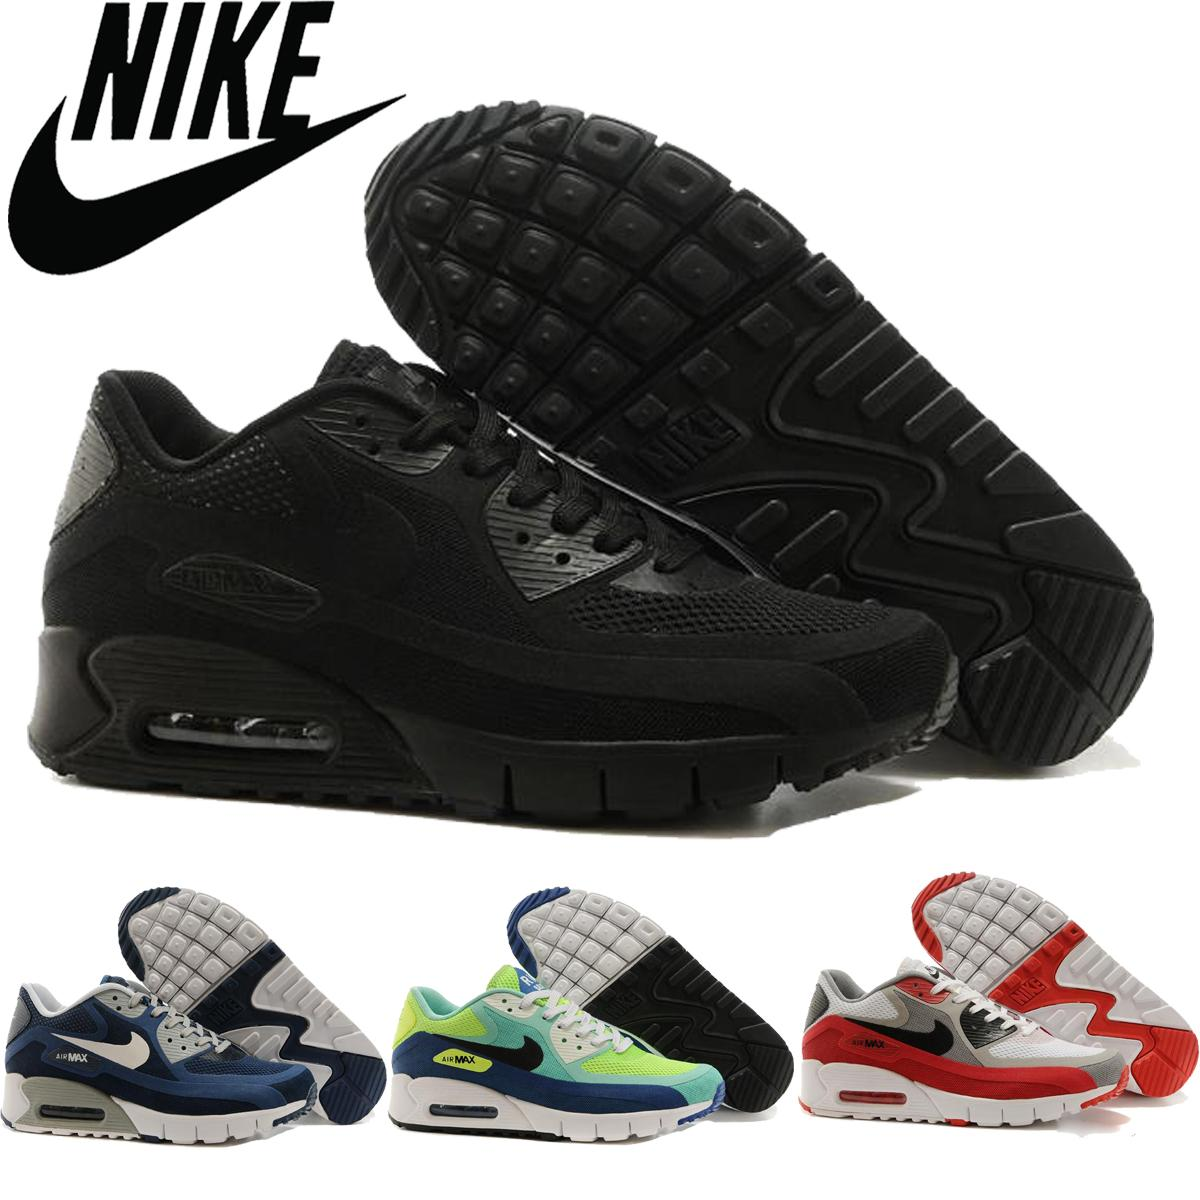 low priced fc889 a4b9c Nike Air Max 90 Br All Black Men Running Shoes Cheap Outdoor Athletic Shoes  Breathable Black Blue Red Airmax Tennis Sport Shoes New Arrival Best Running  ...